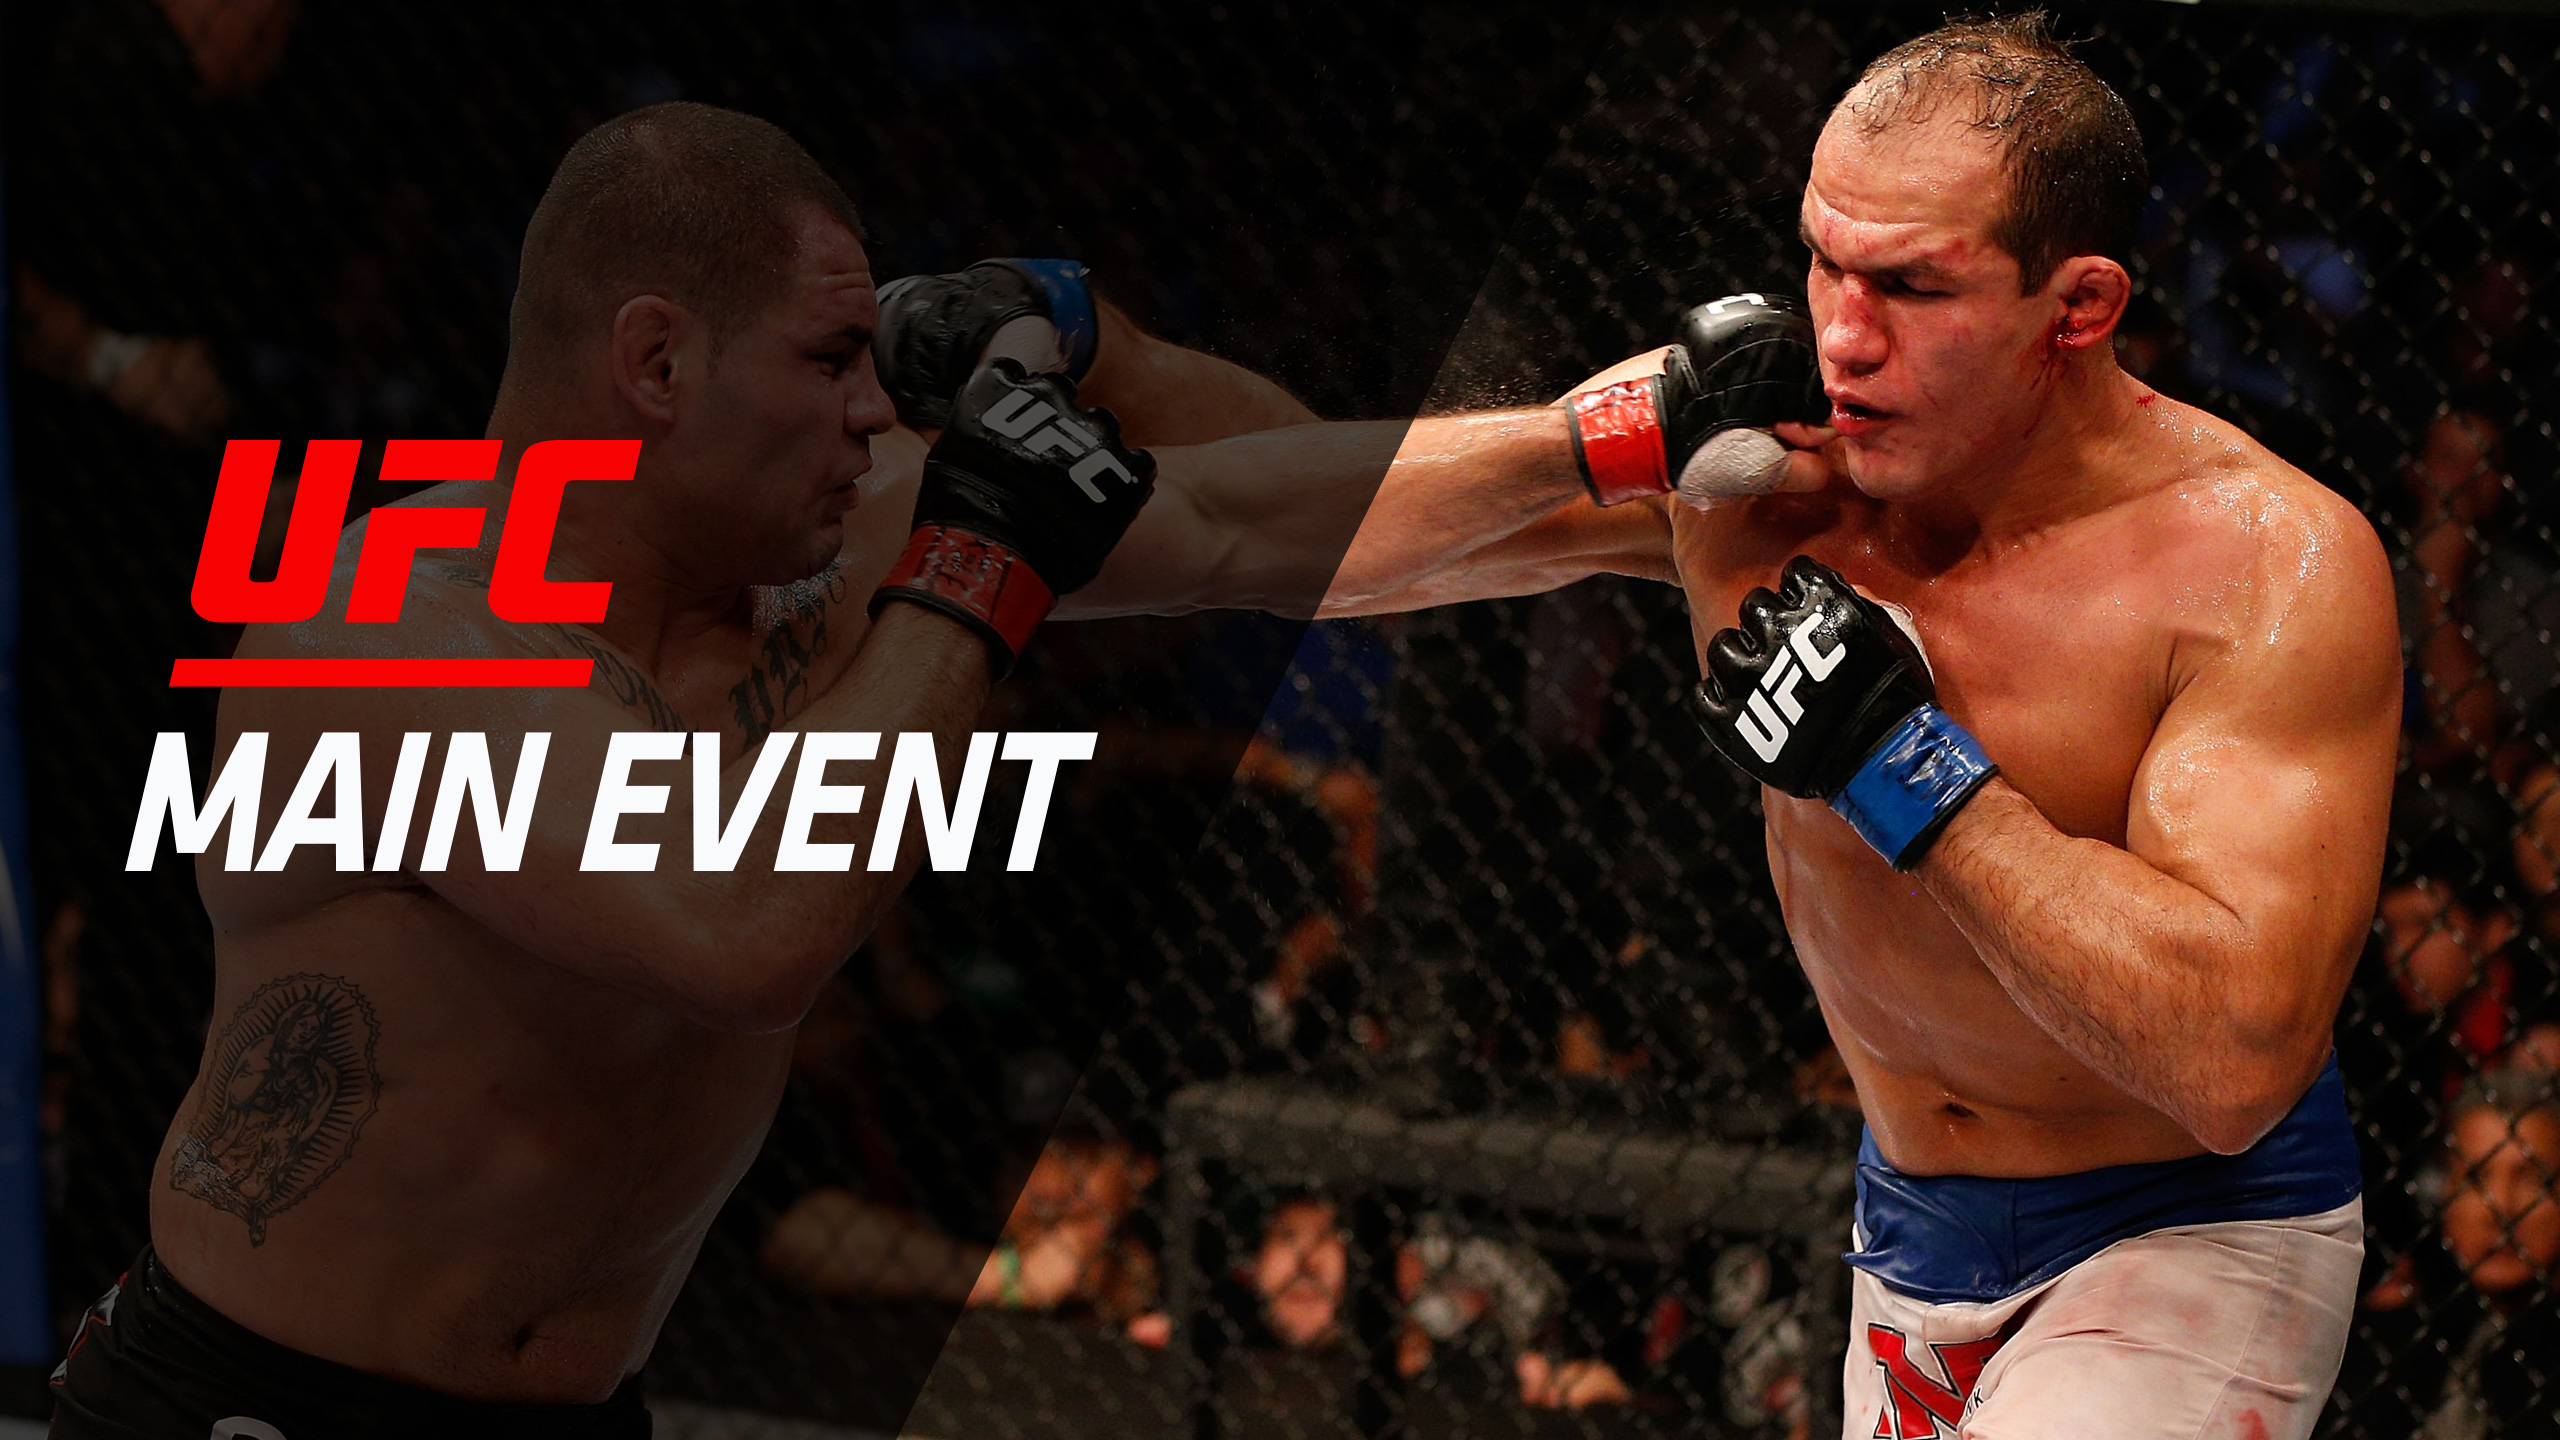 UFC Main Event: Velasquez vs. Dos Santos 3